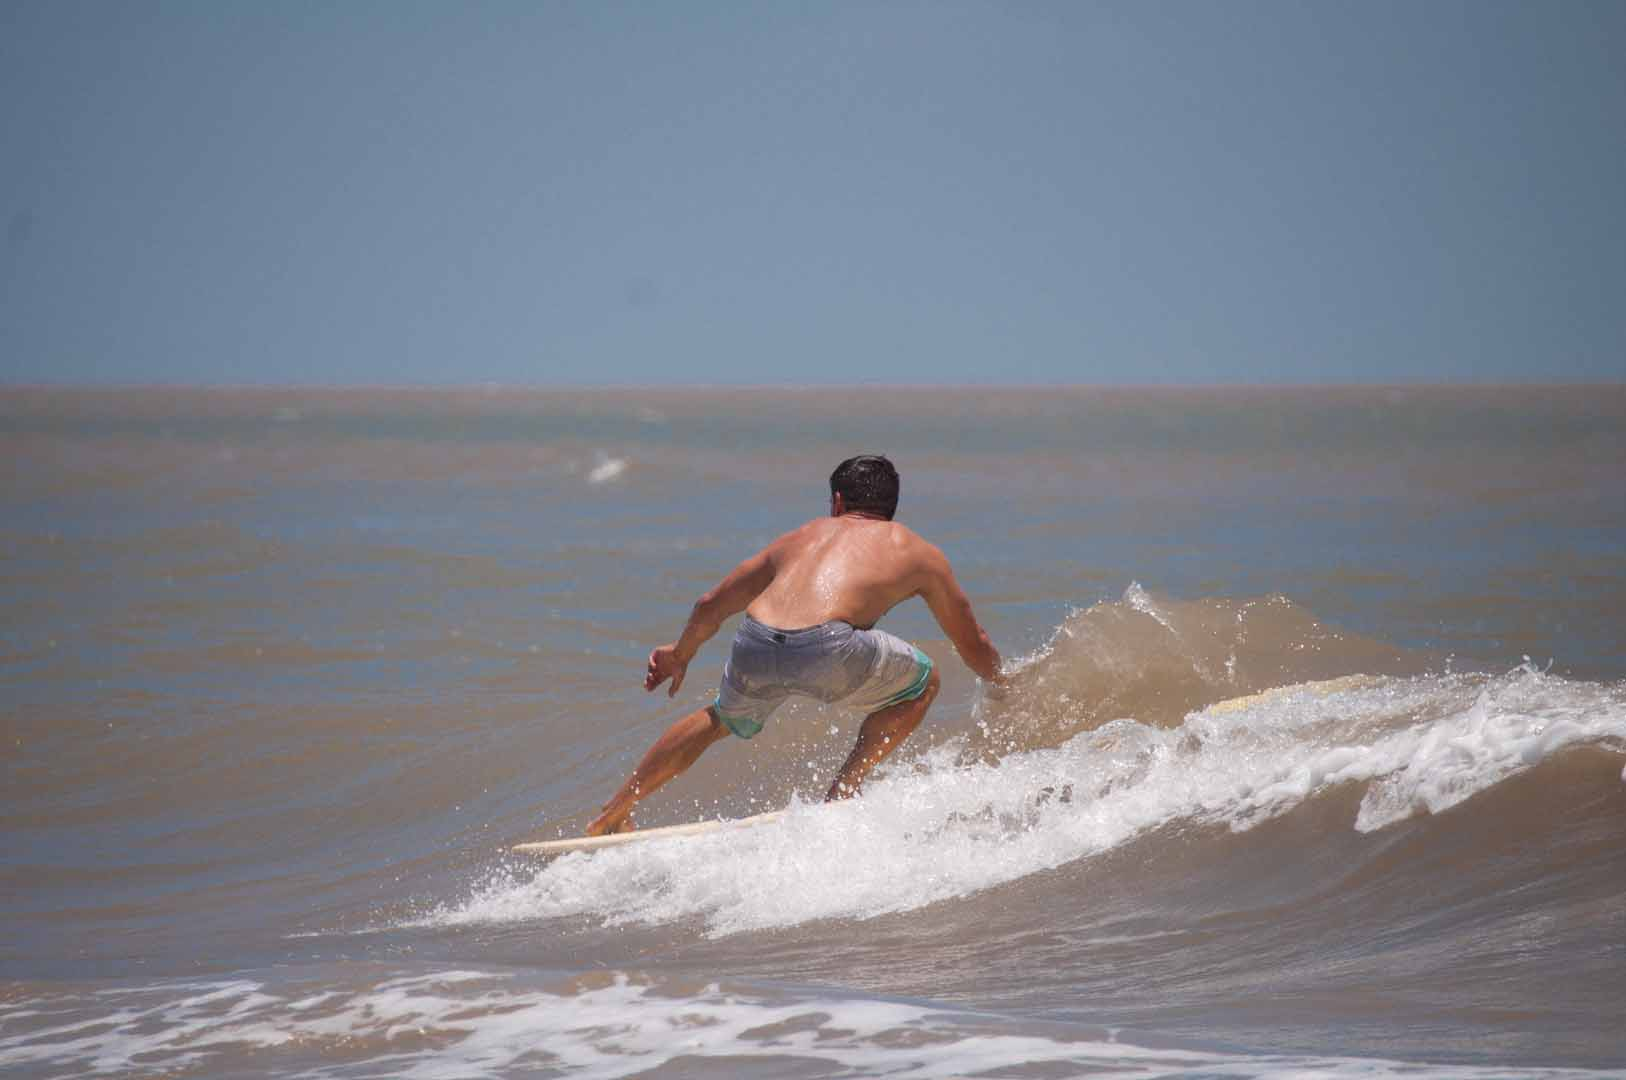 SurfsideLateJune_20150627_270